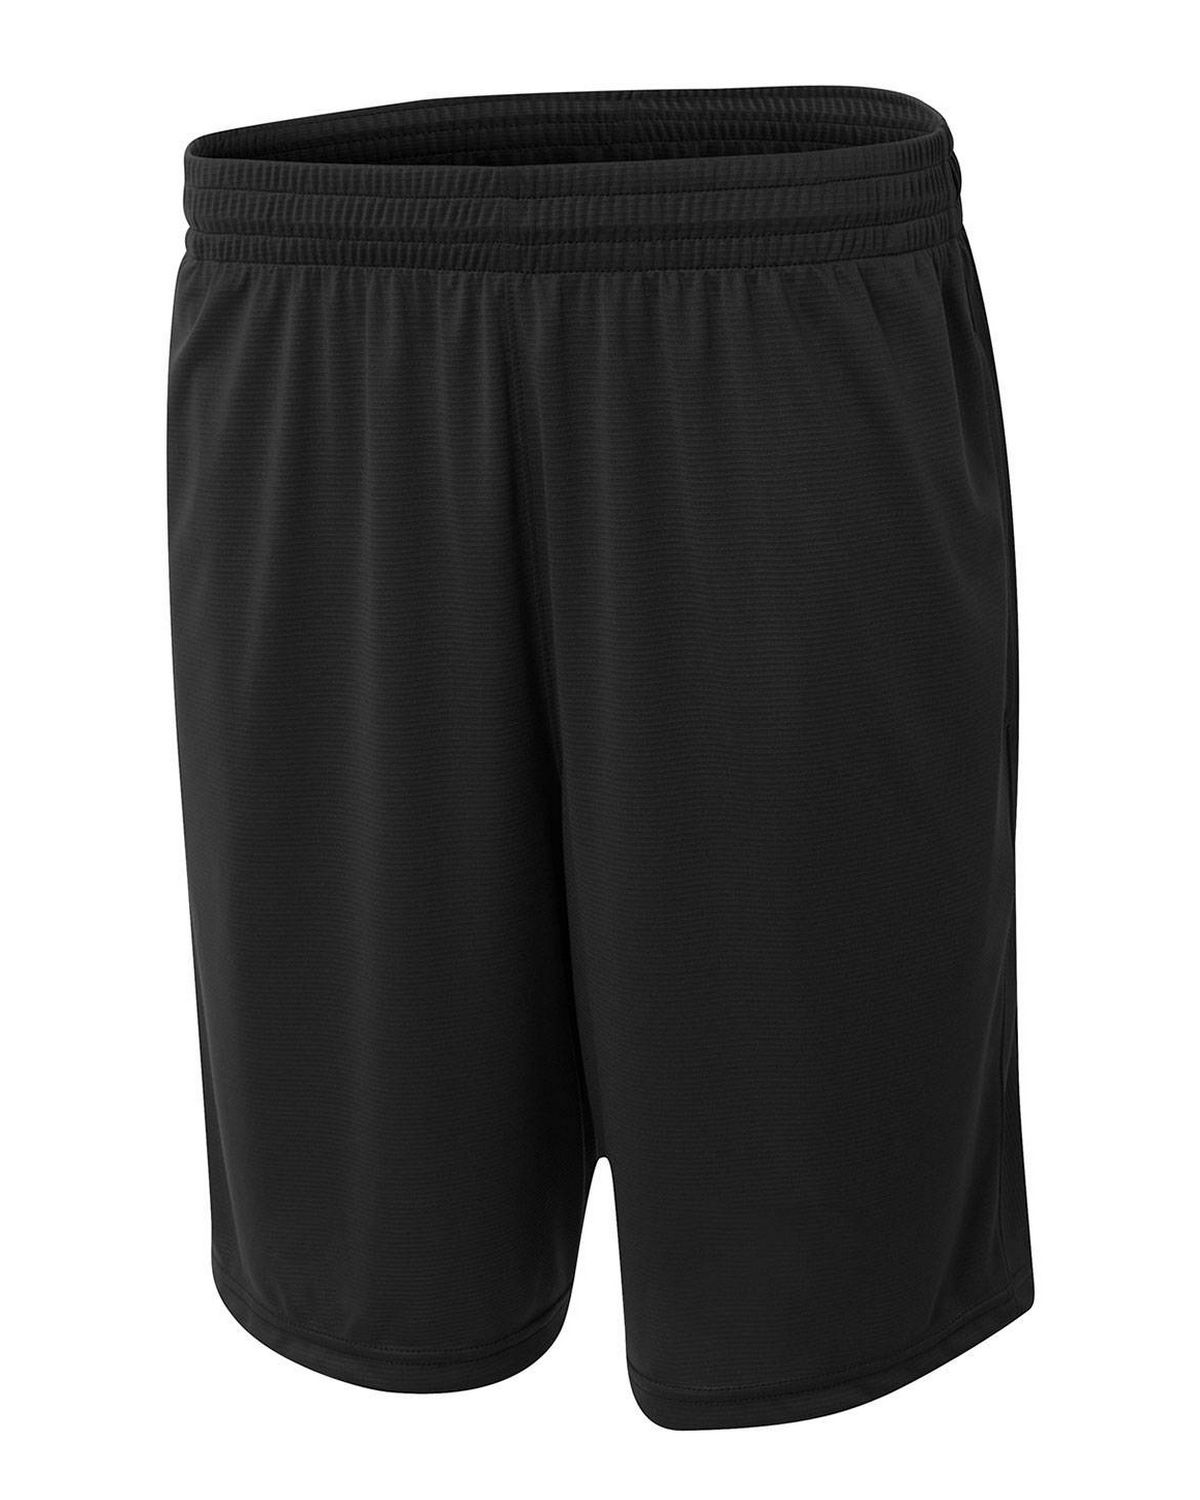 A4 N5370 Men's Player 10 inch Pocketed Polyester Short